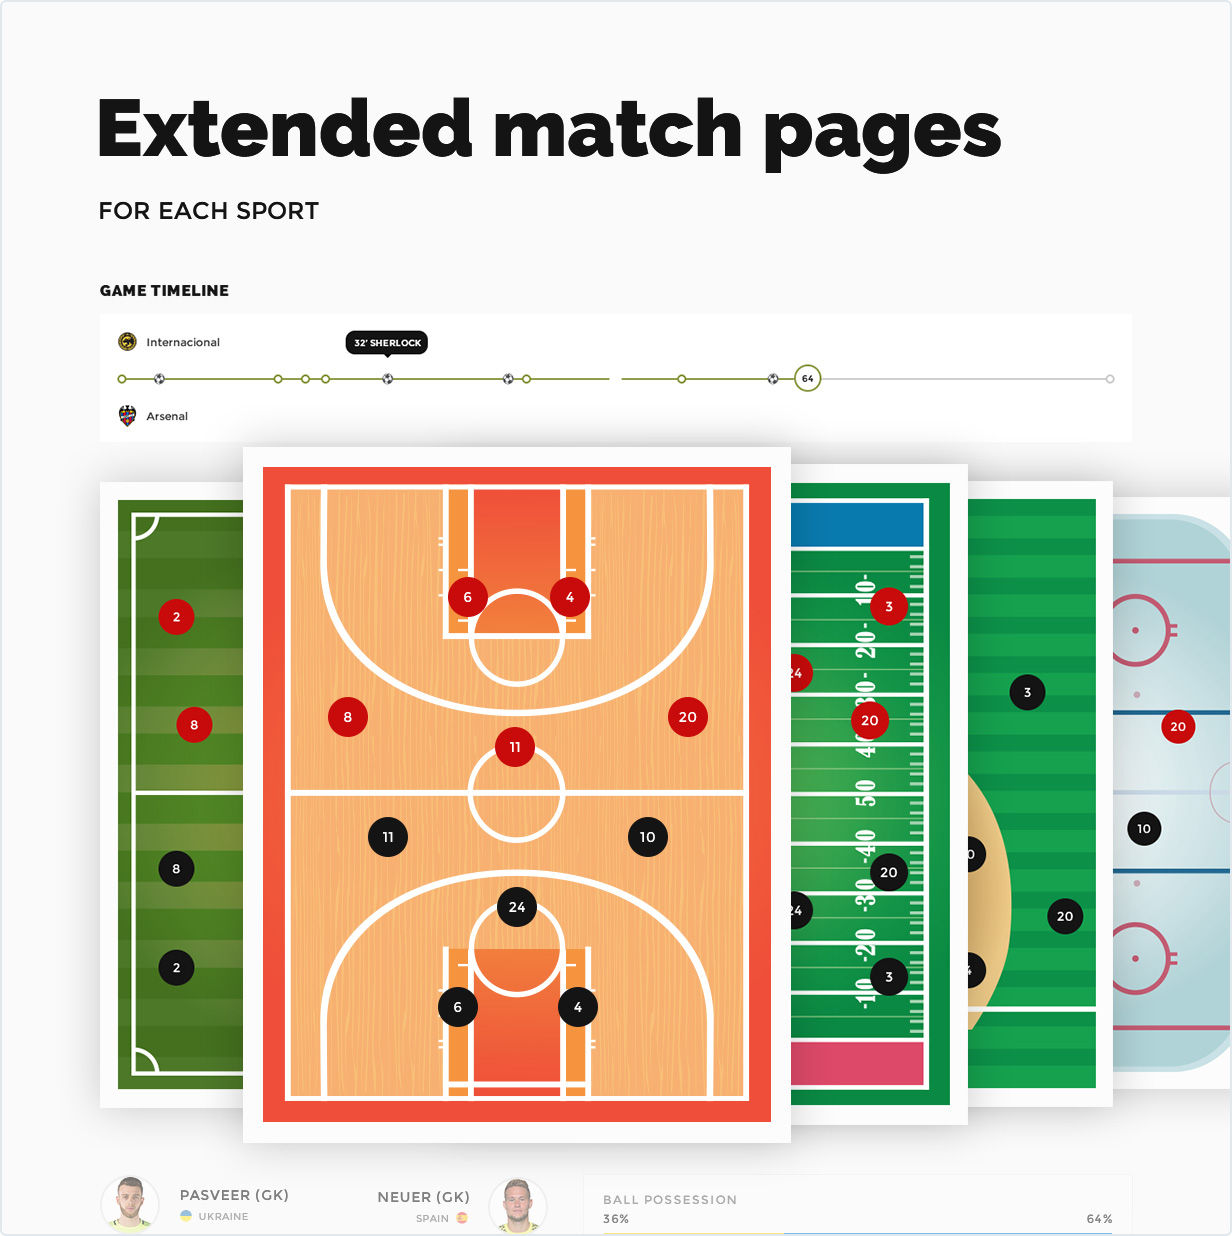 Extended match pages